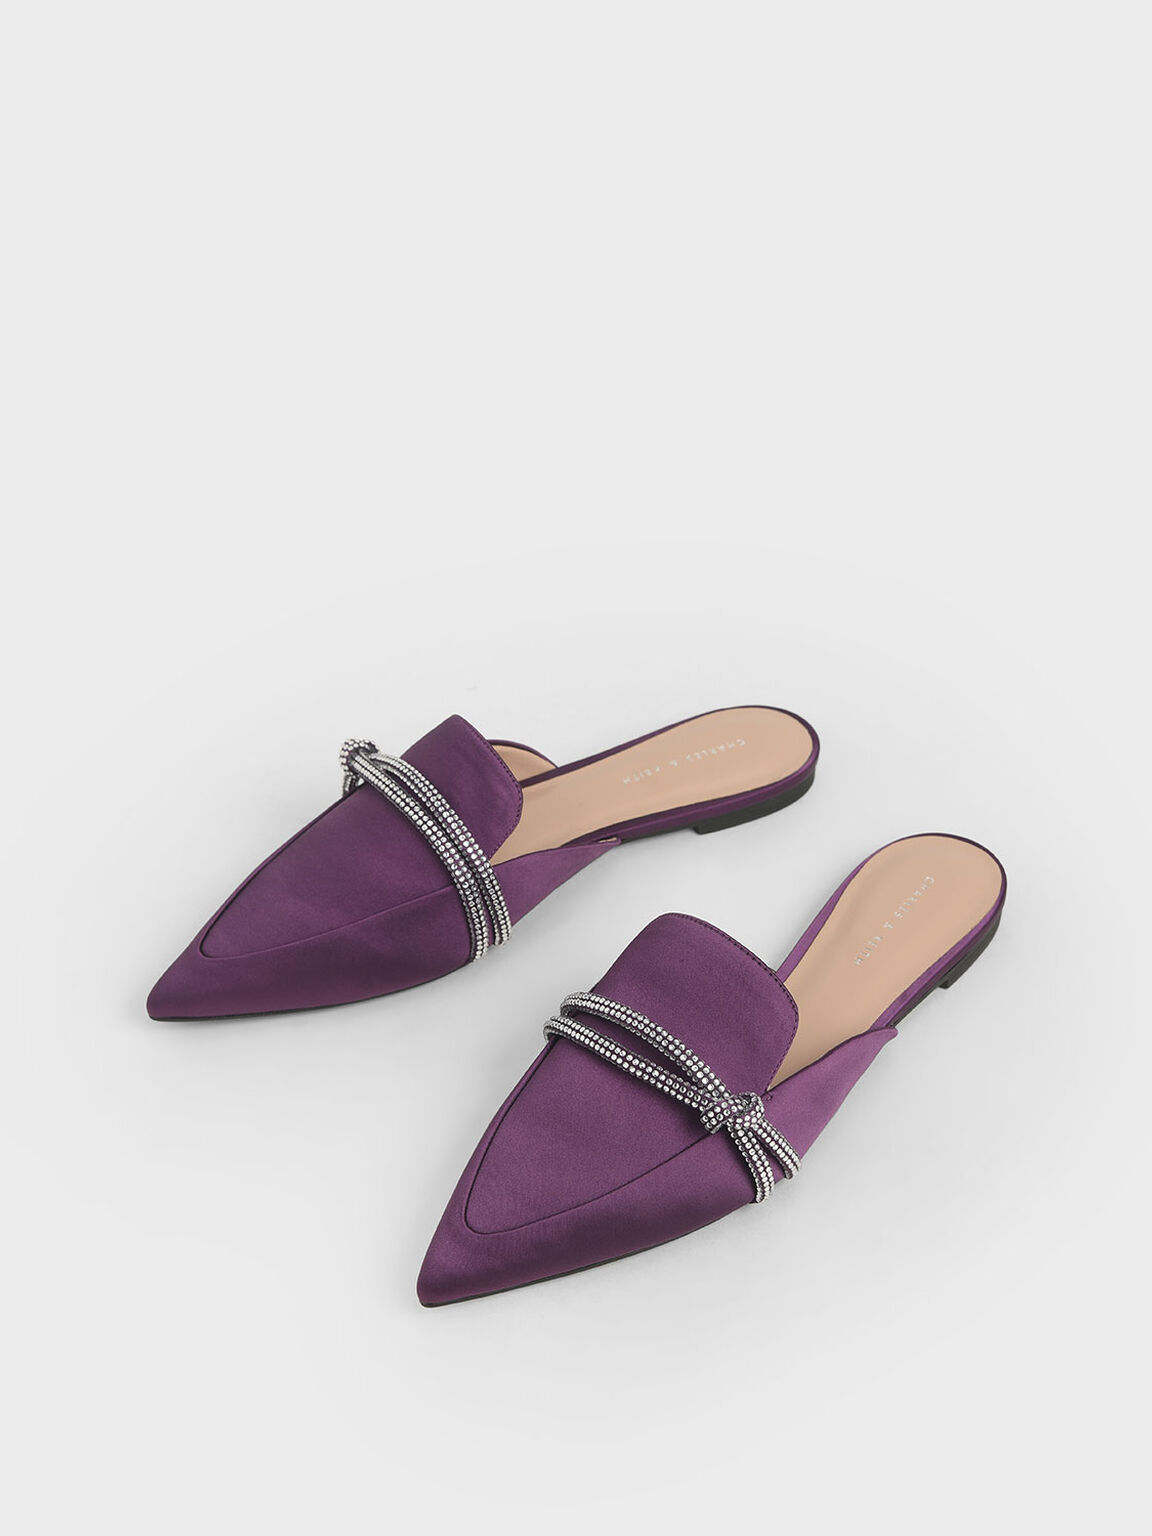 Satin Embellished-Knot Mules, Purple, hi-res